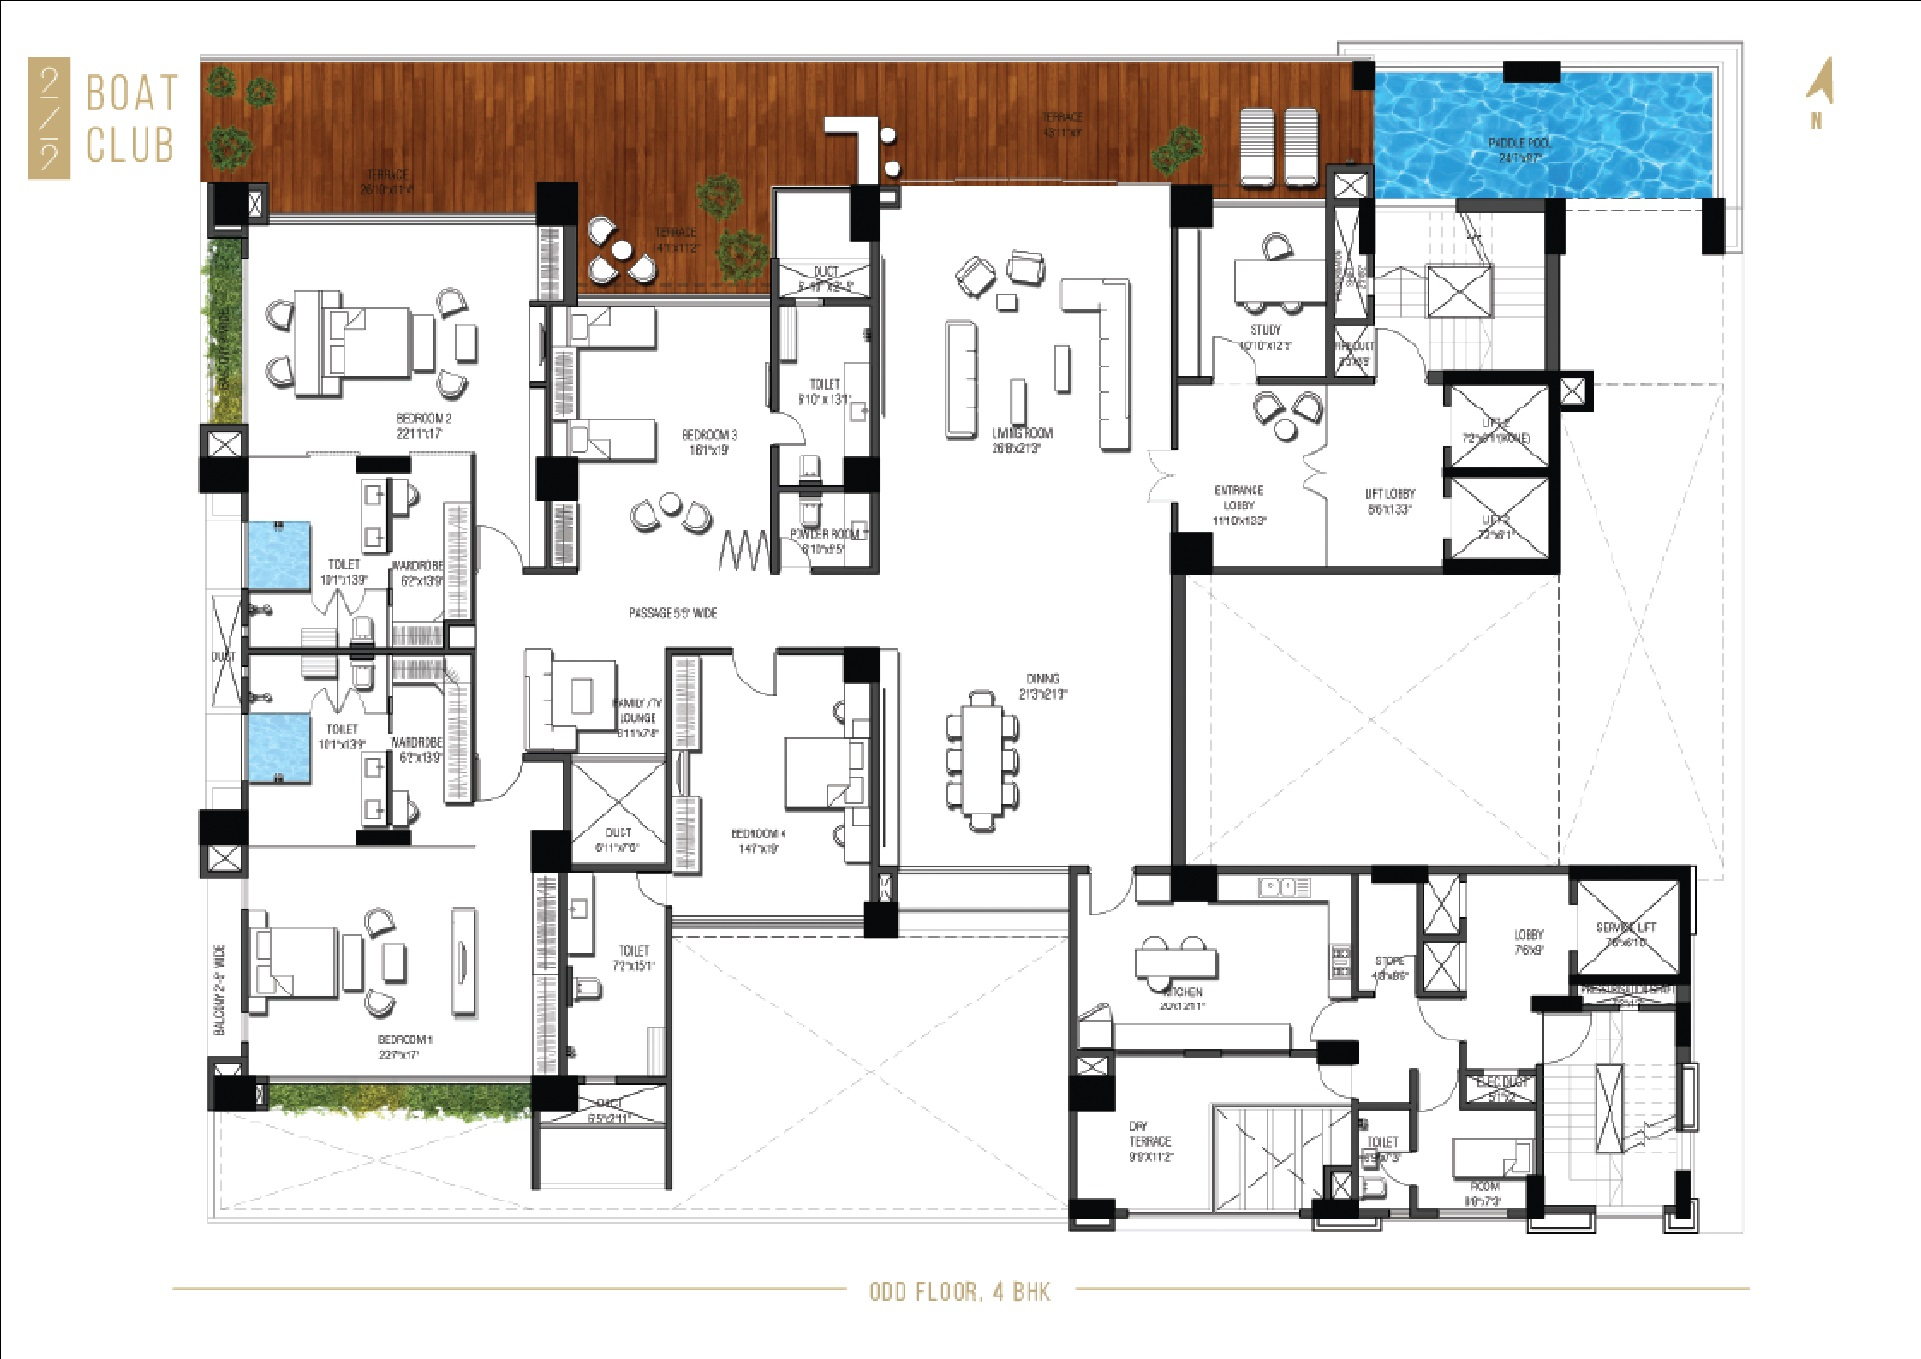 219 boat club project floor plans1